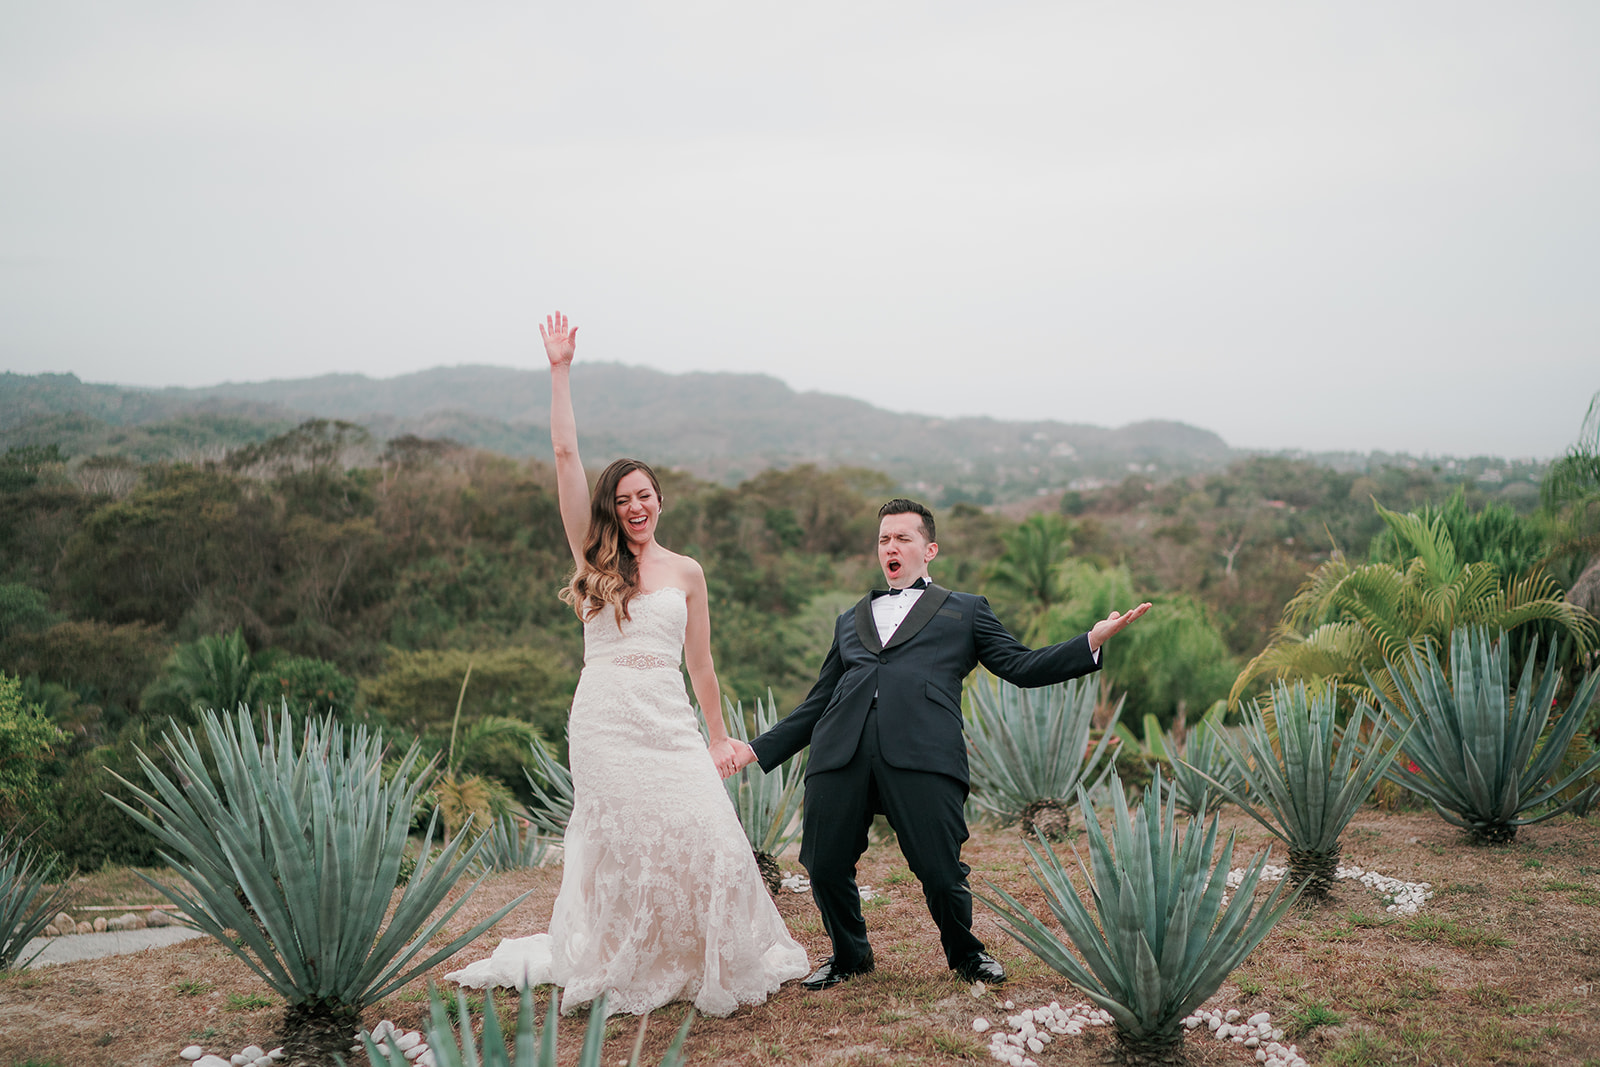 Kate+Juan-584_websize.jpg